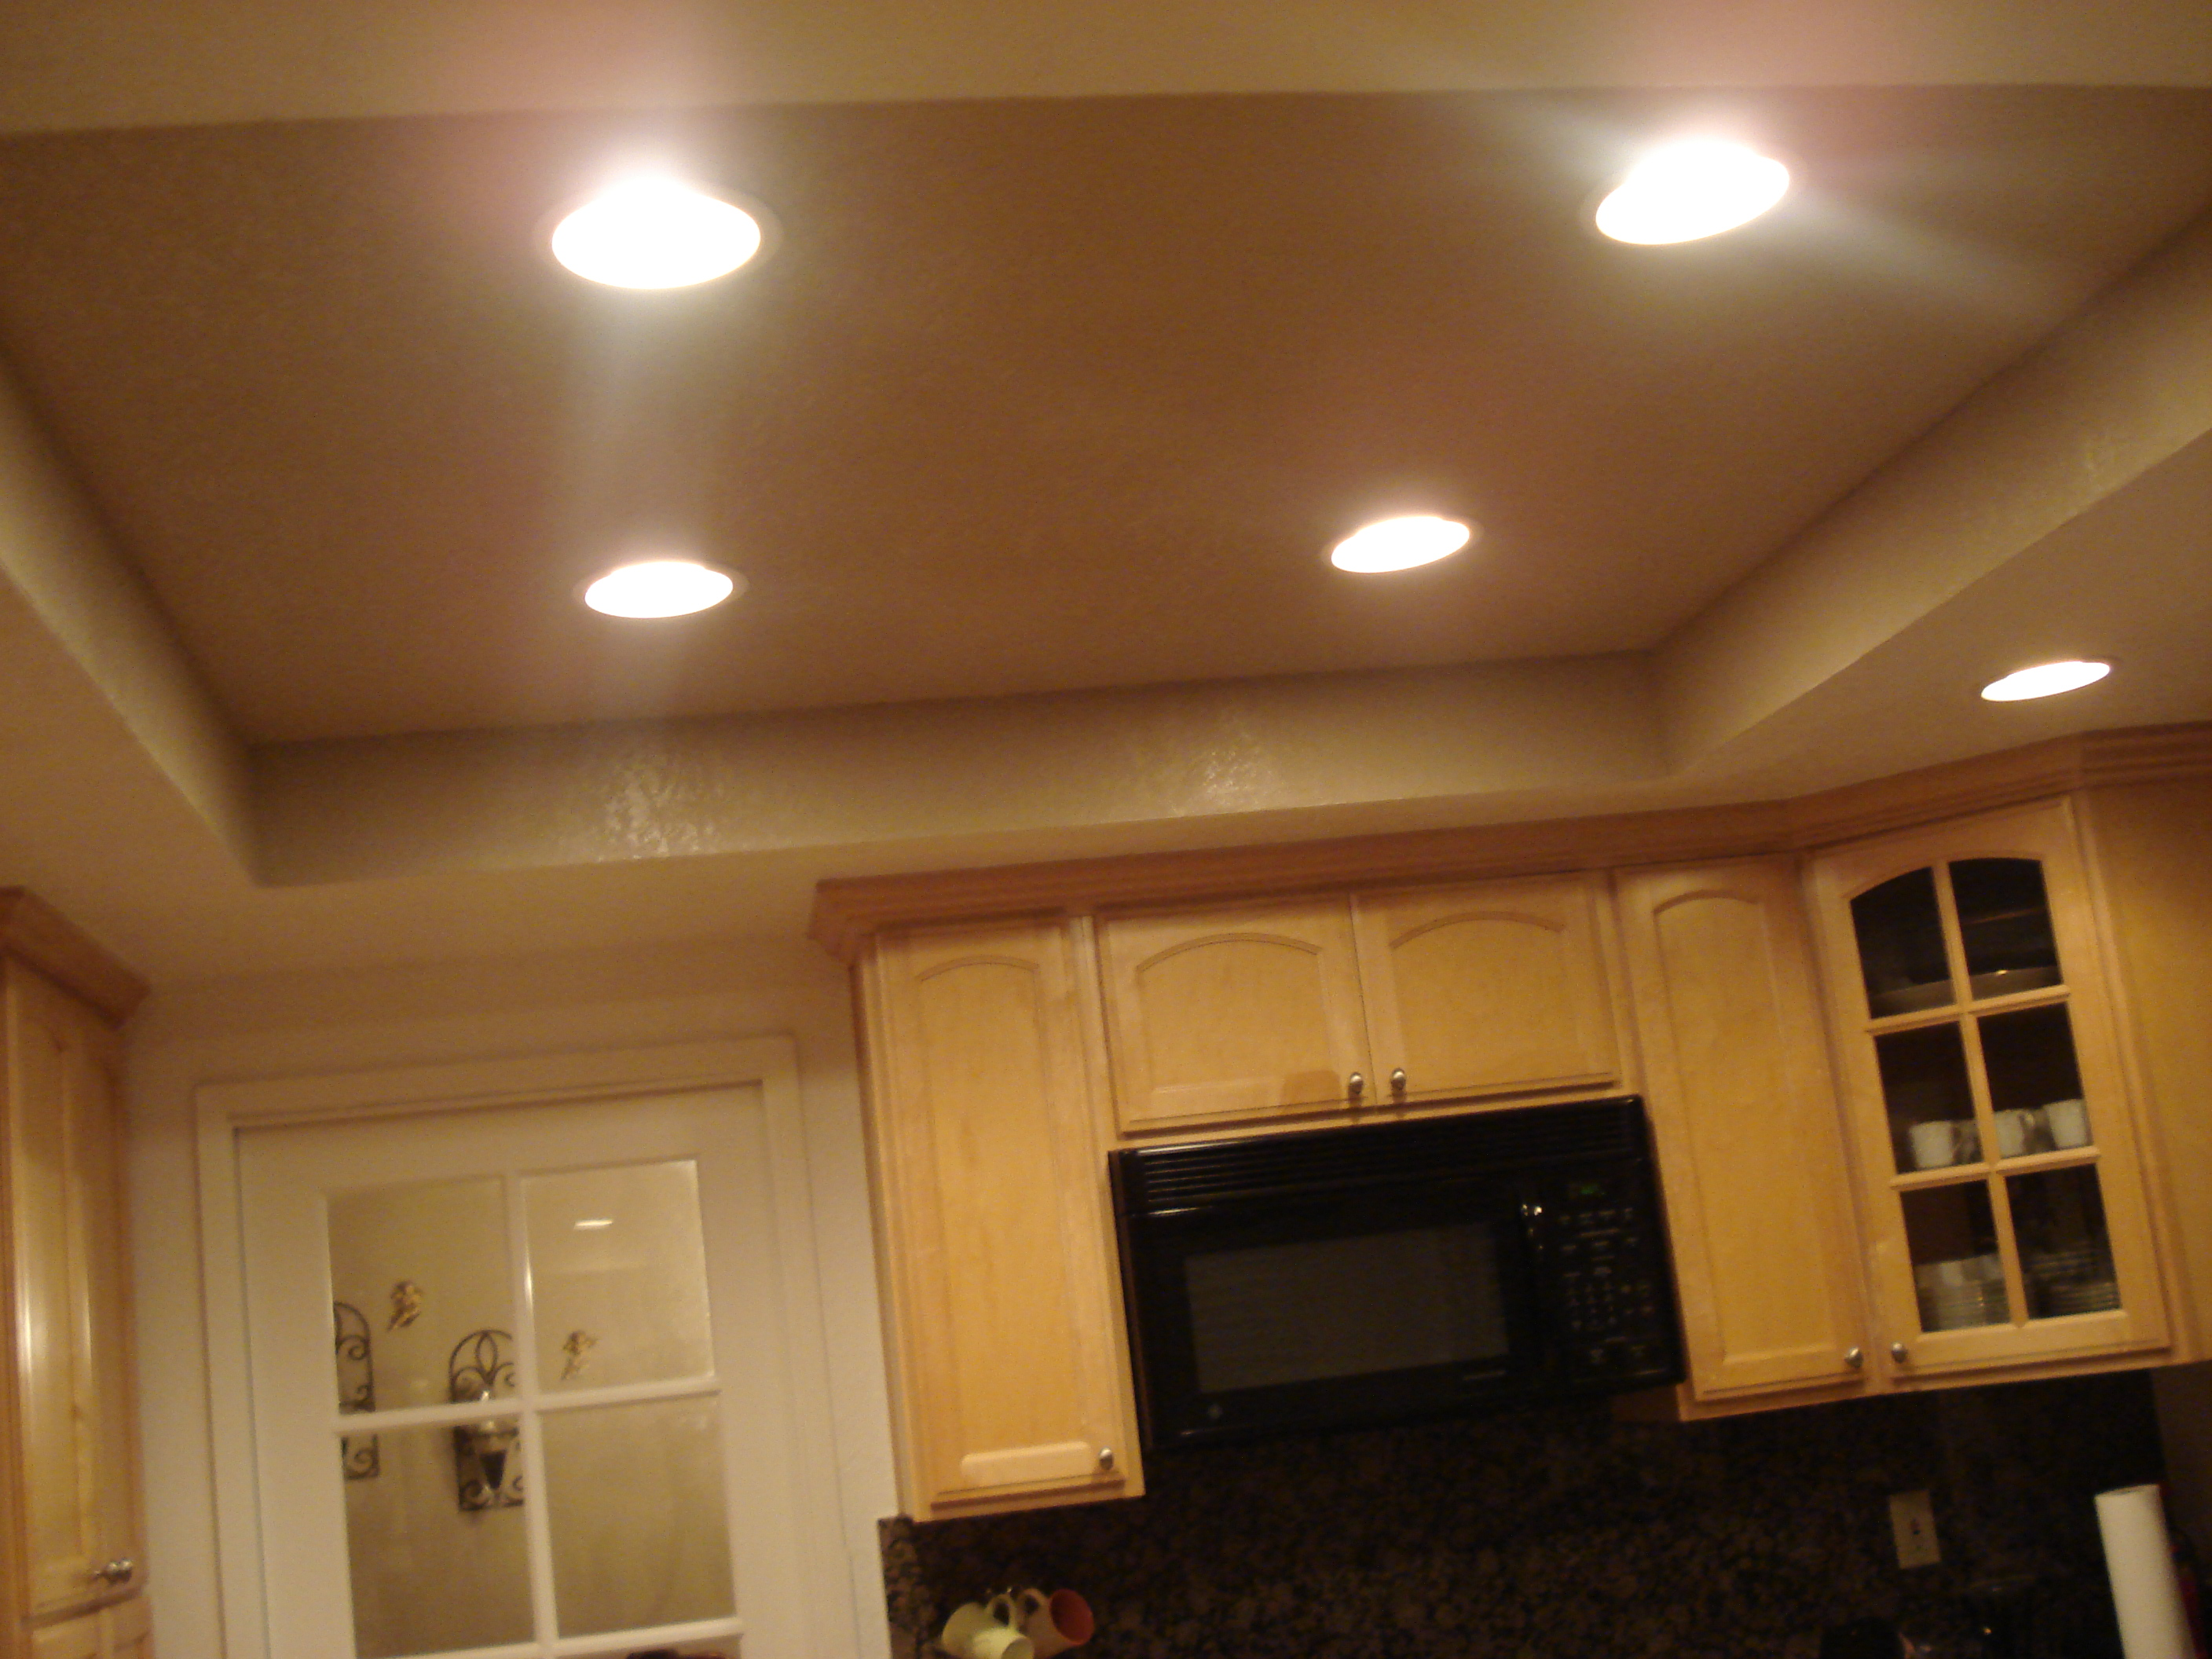 Recessed Lighting In Soffit - Democraciaejustica